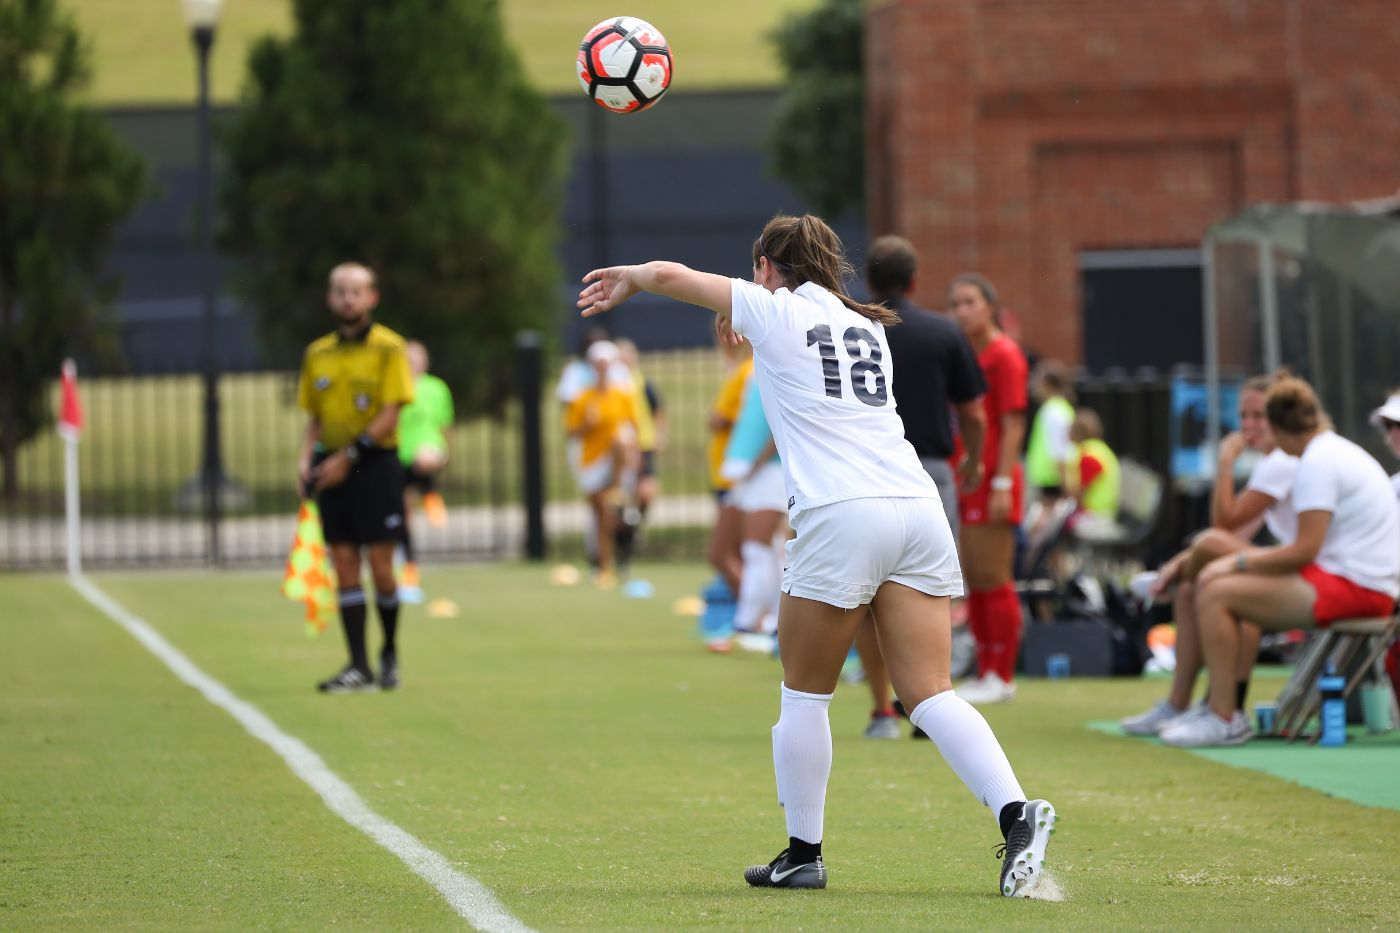 Bucs Visit George Mason For Last Non-Conference Match